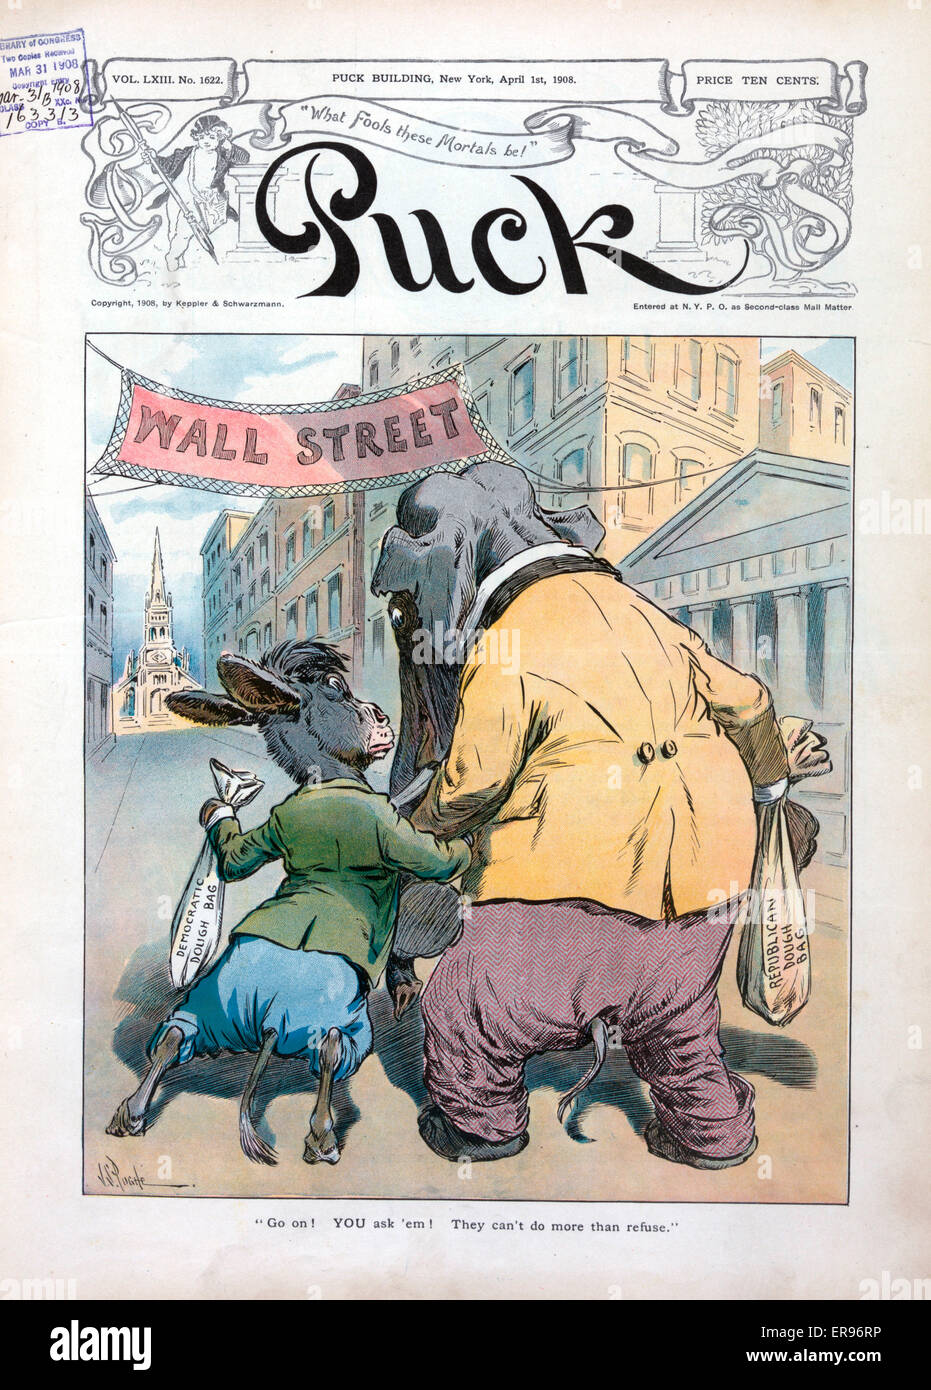 Go on! You ask 'em! They can't do more than refuse. Illustration shows the Democratic donkey carrying the - Stock Image